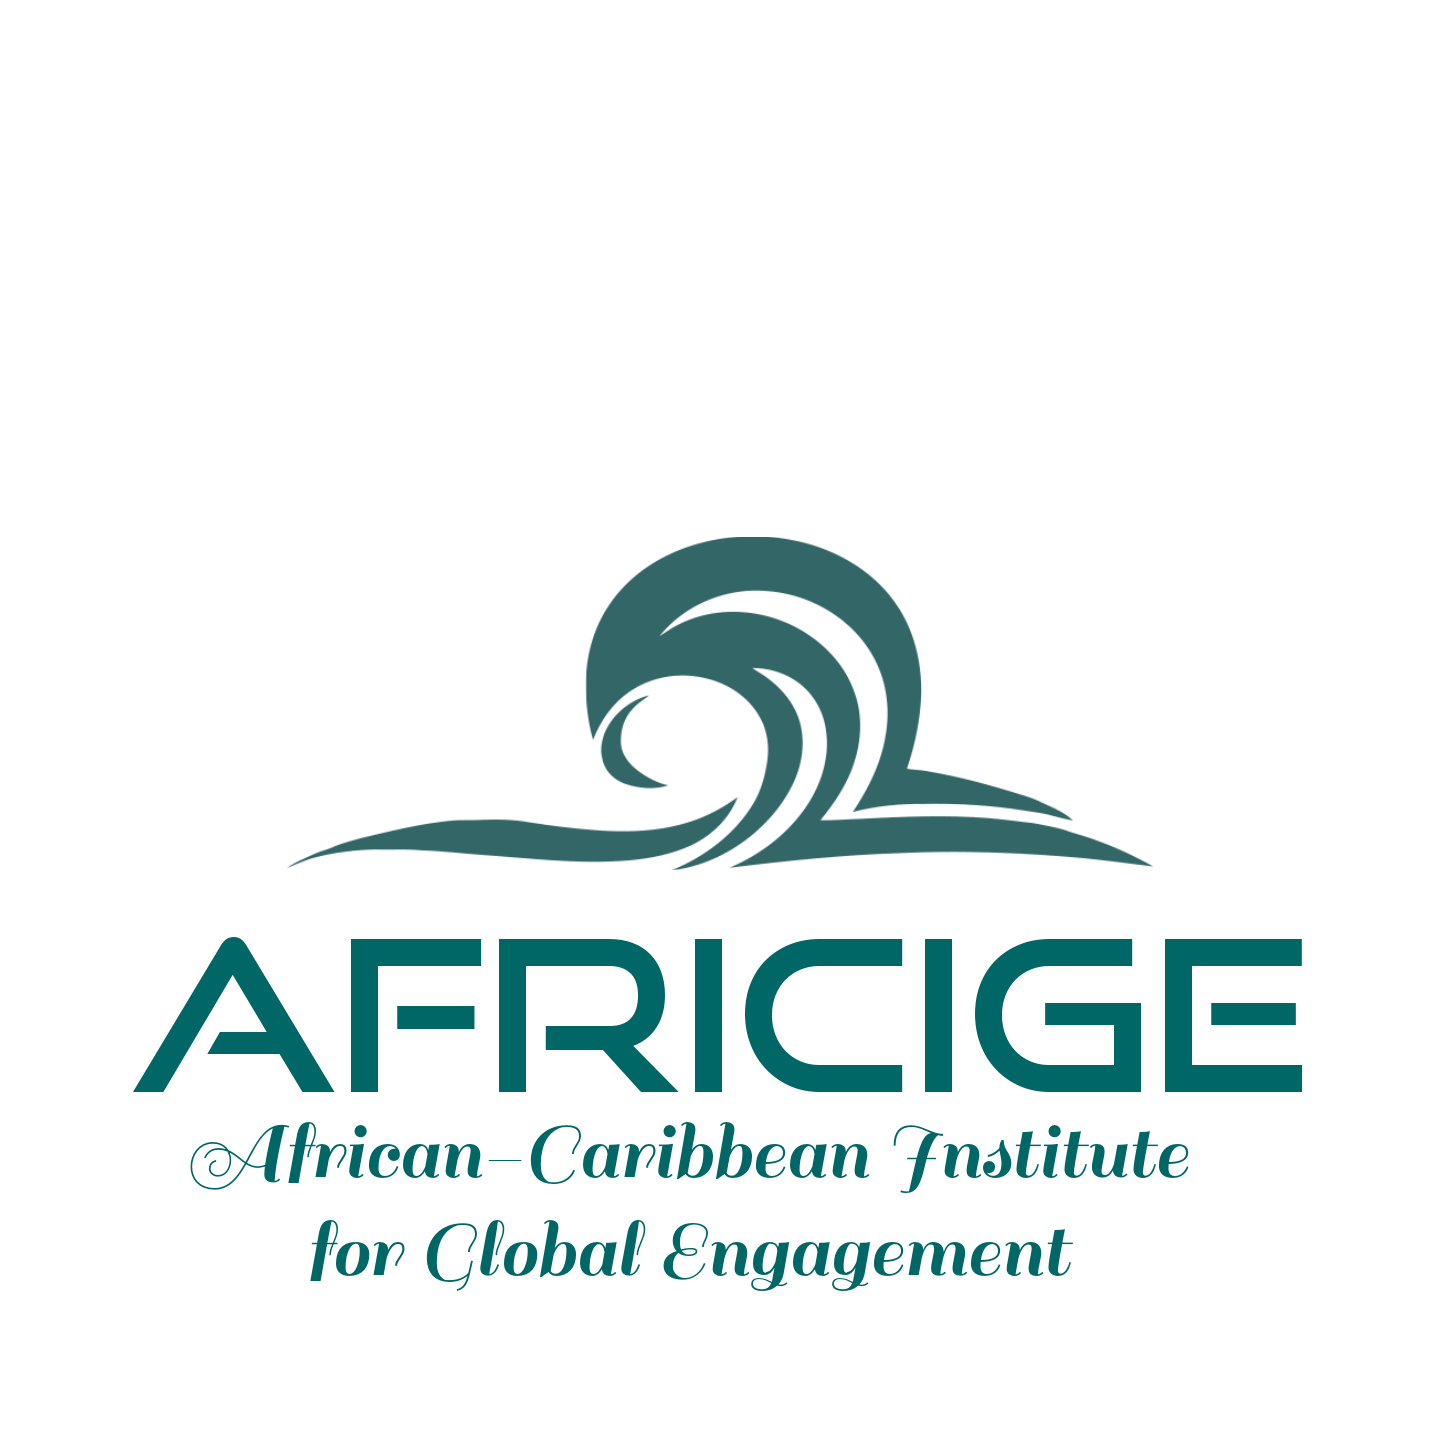 African-Caribbean Institute for Global Engagement